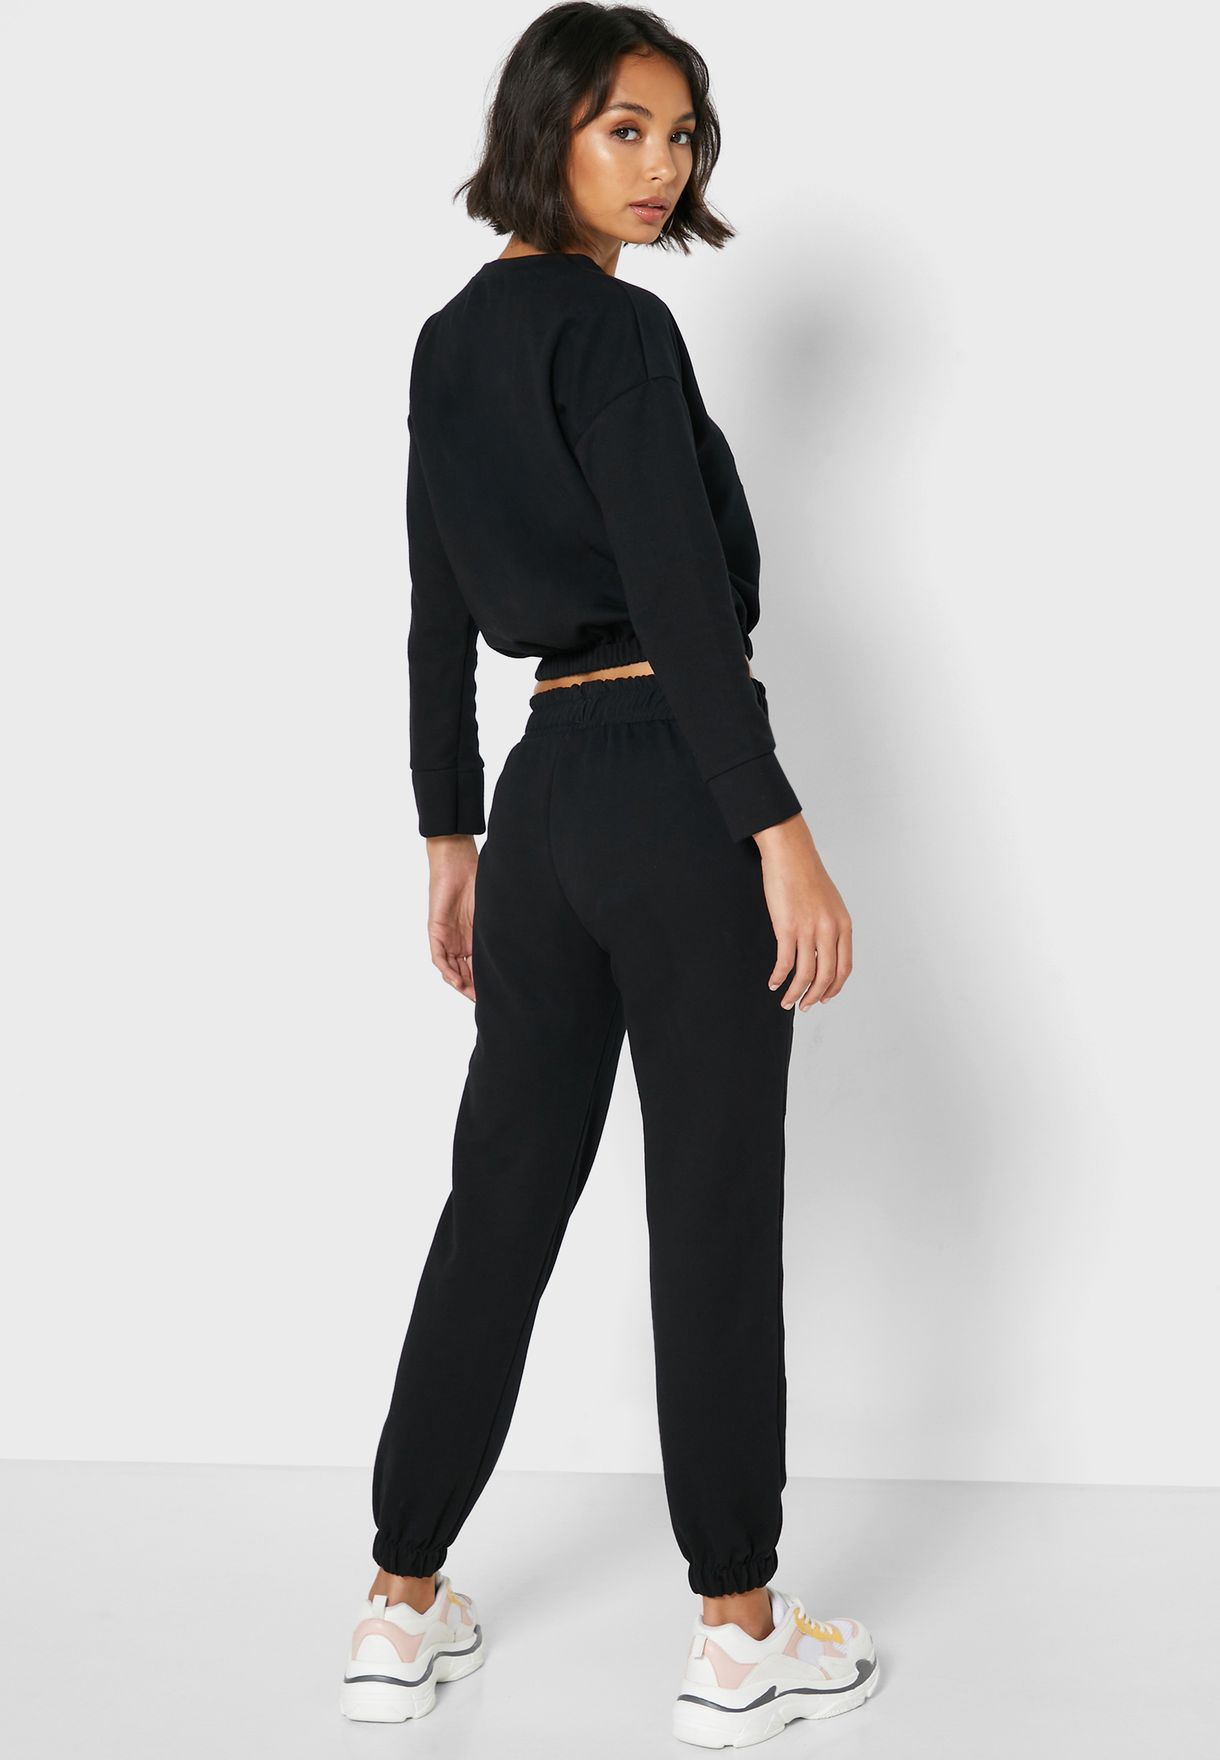 Slogan Jogger Pants Set